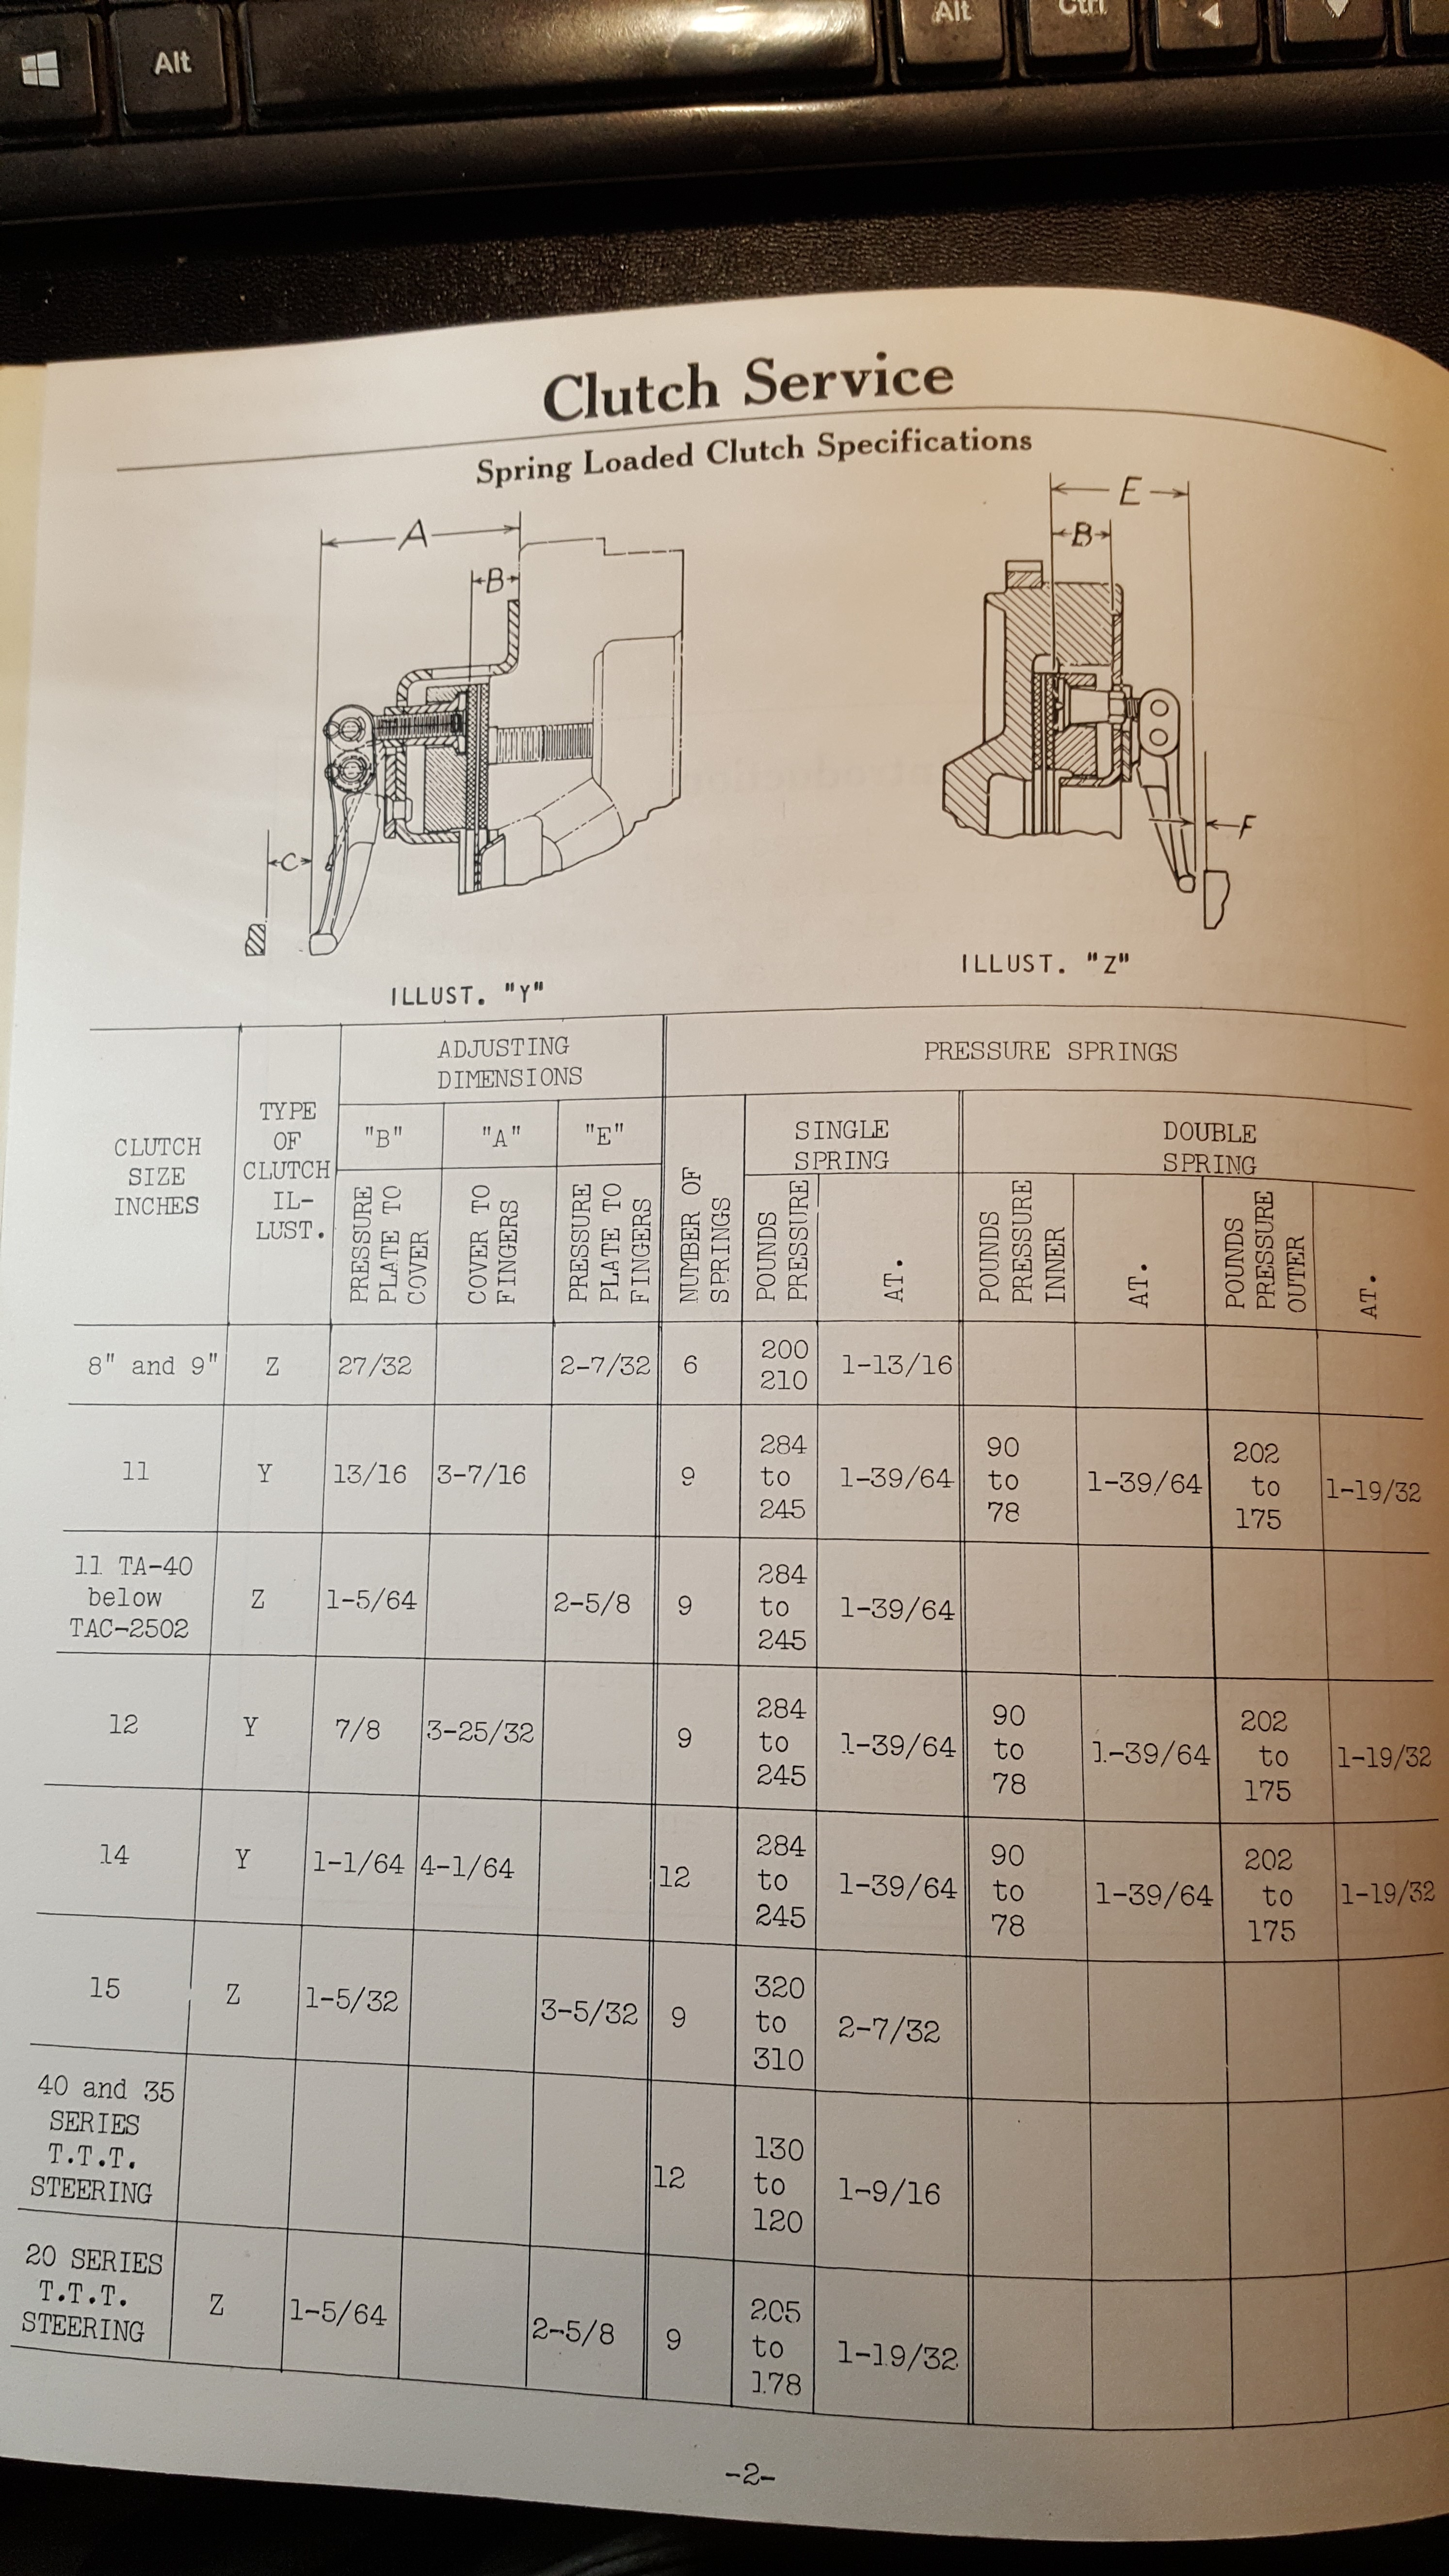 85 Ford 8000 Cat 3208 Wiring Diagram - Wiring Library